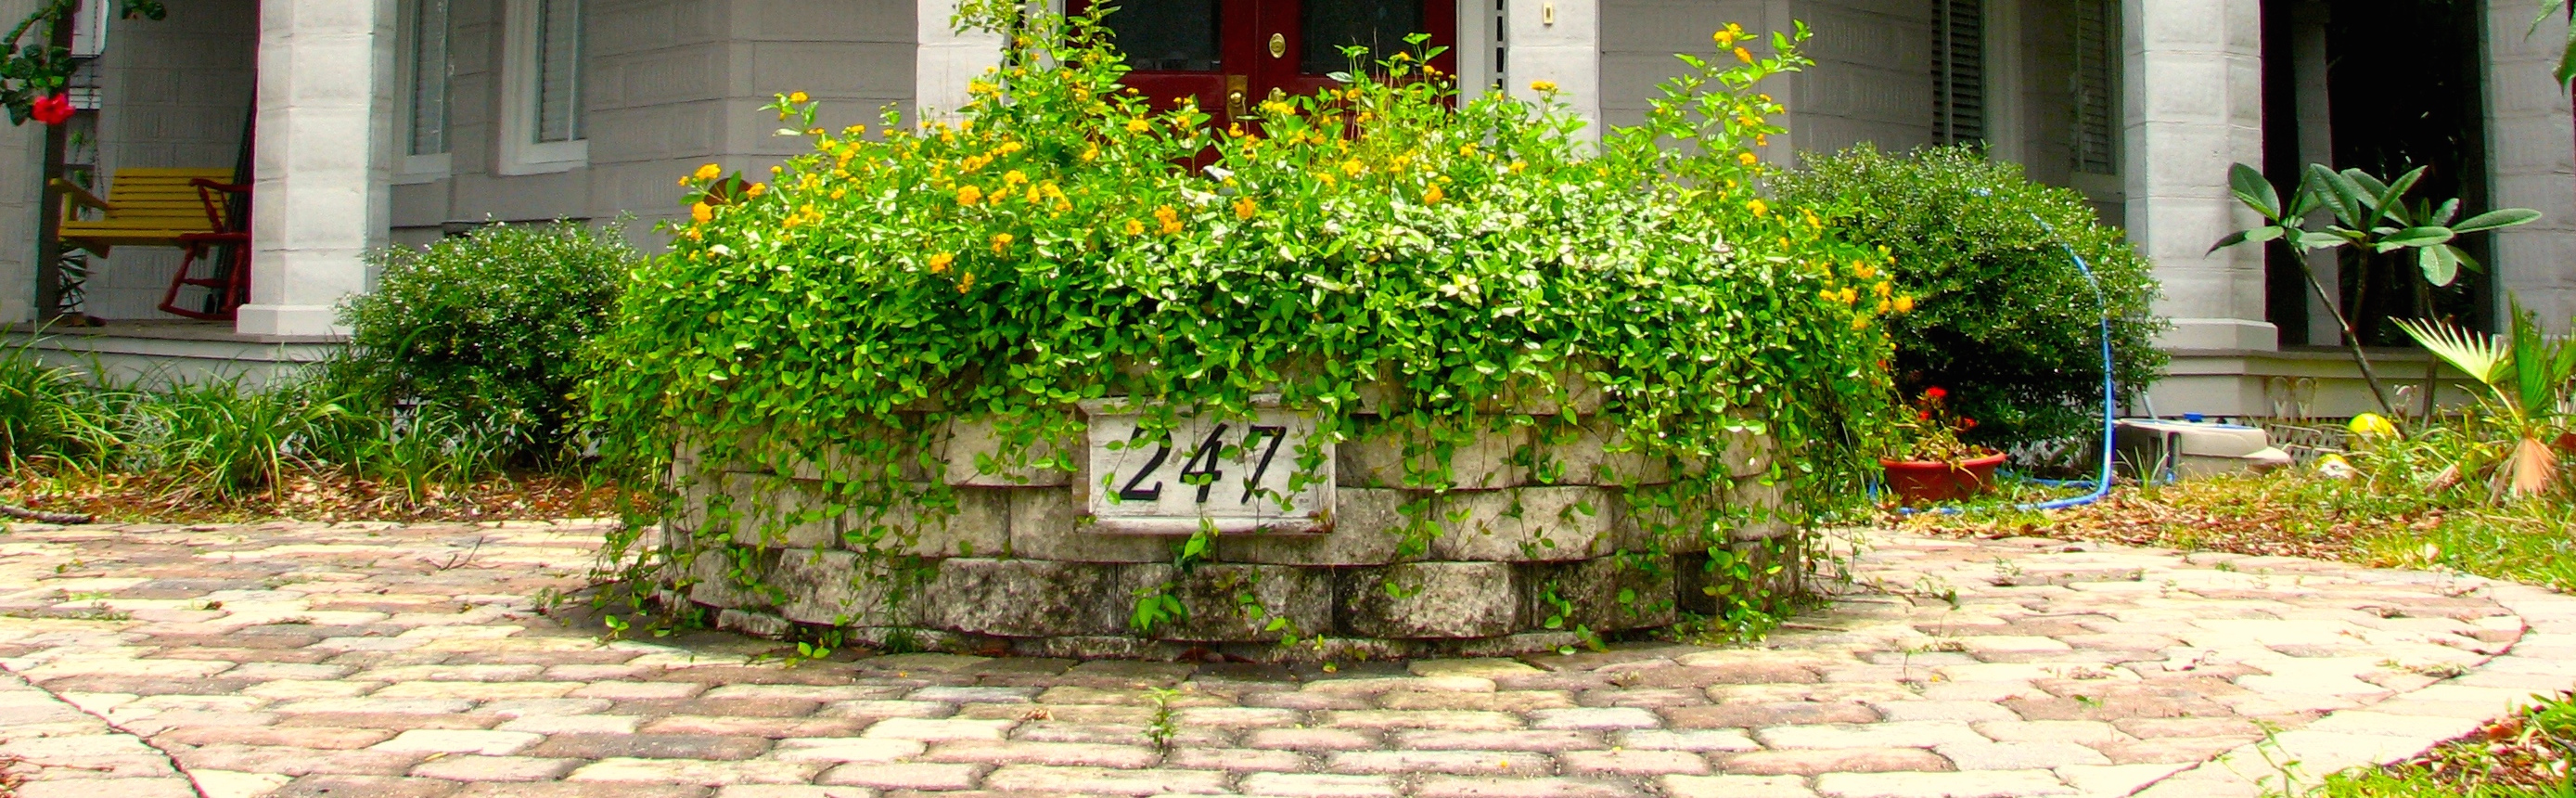 House number address